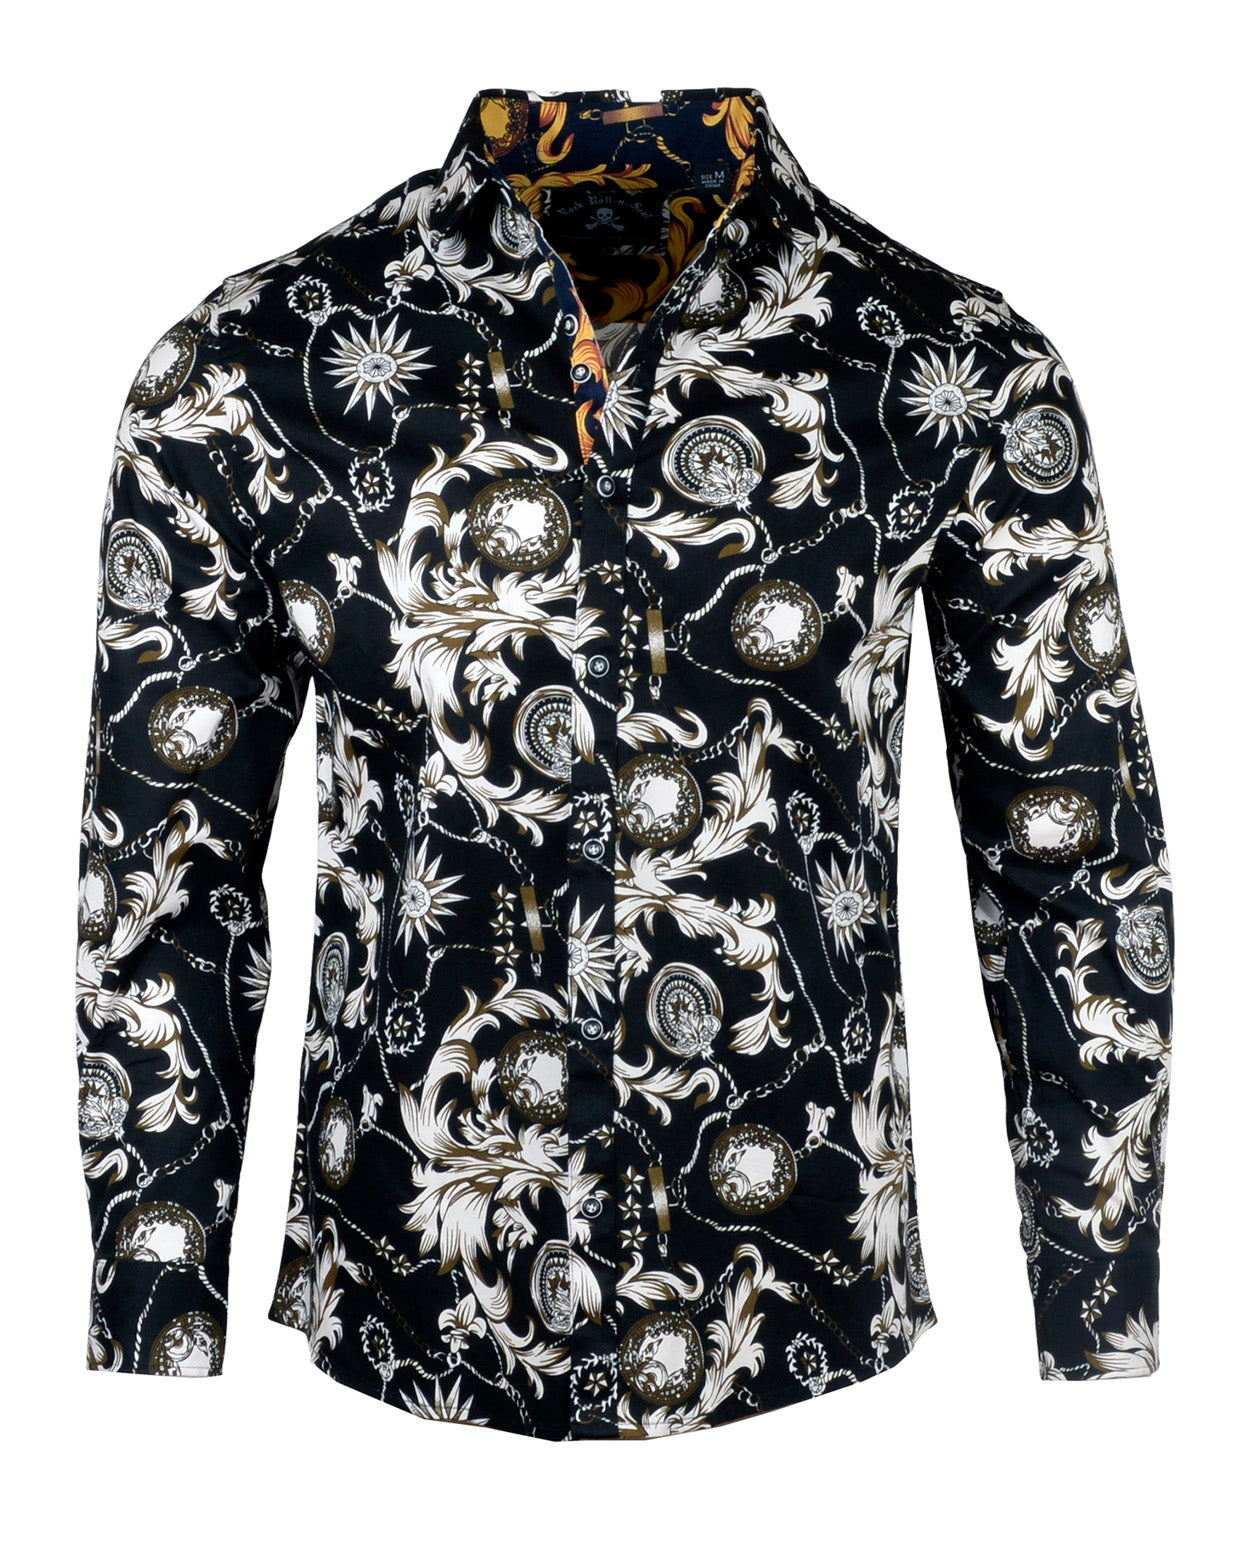 Men's Casual Fashion Button Up Shirt - The Boys are Back in Town by Rock Roll n Soul